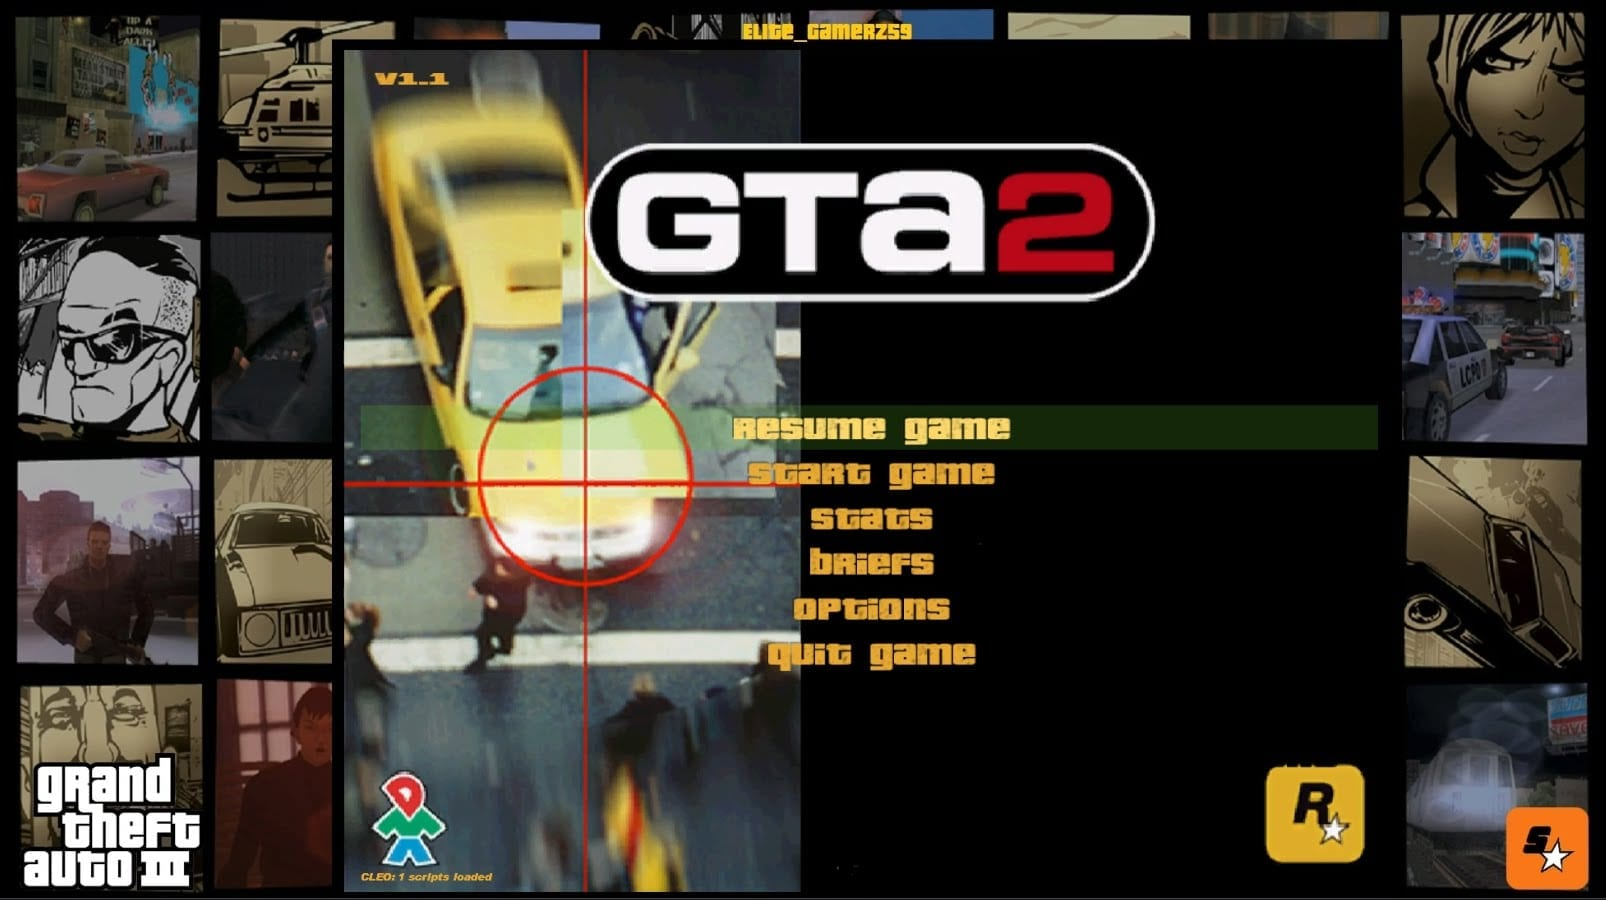 All GTA Games Ranked from Best to Worst